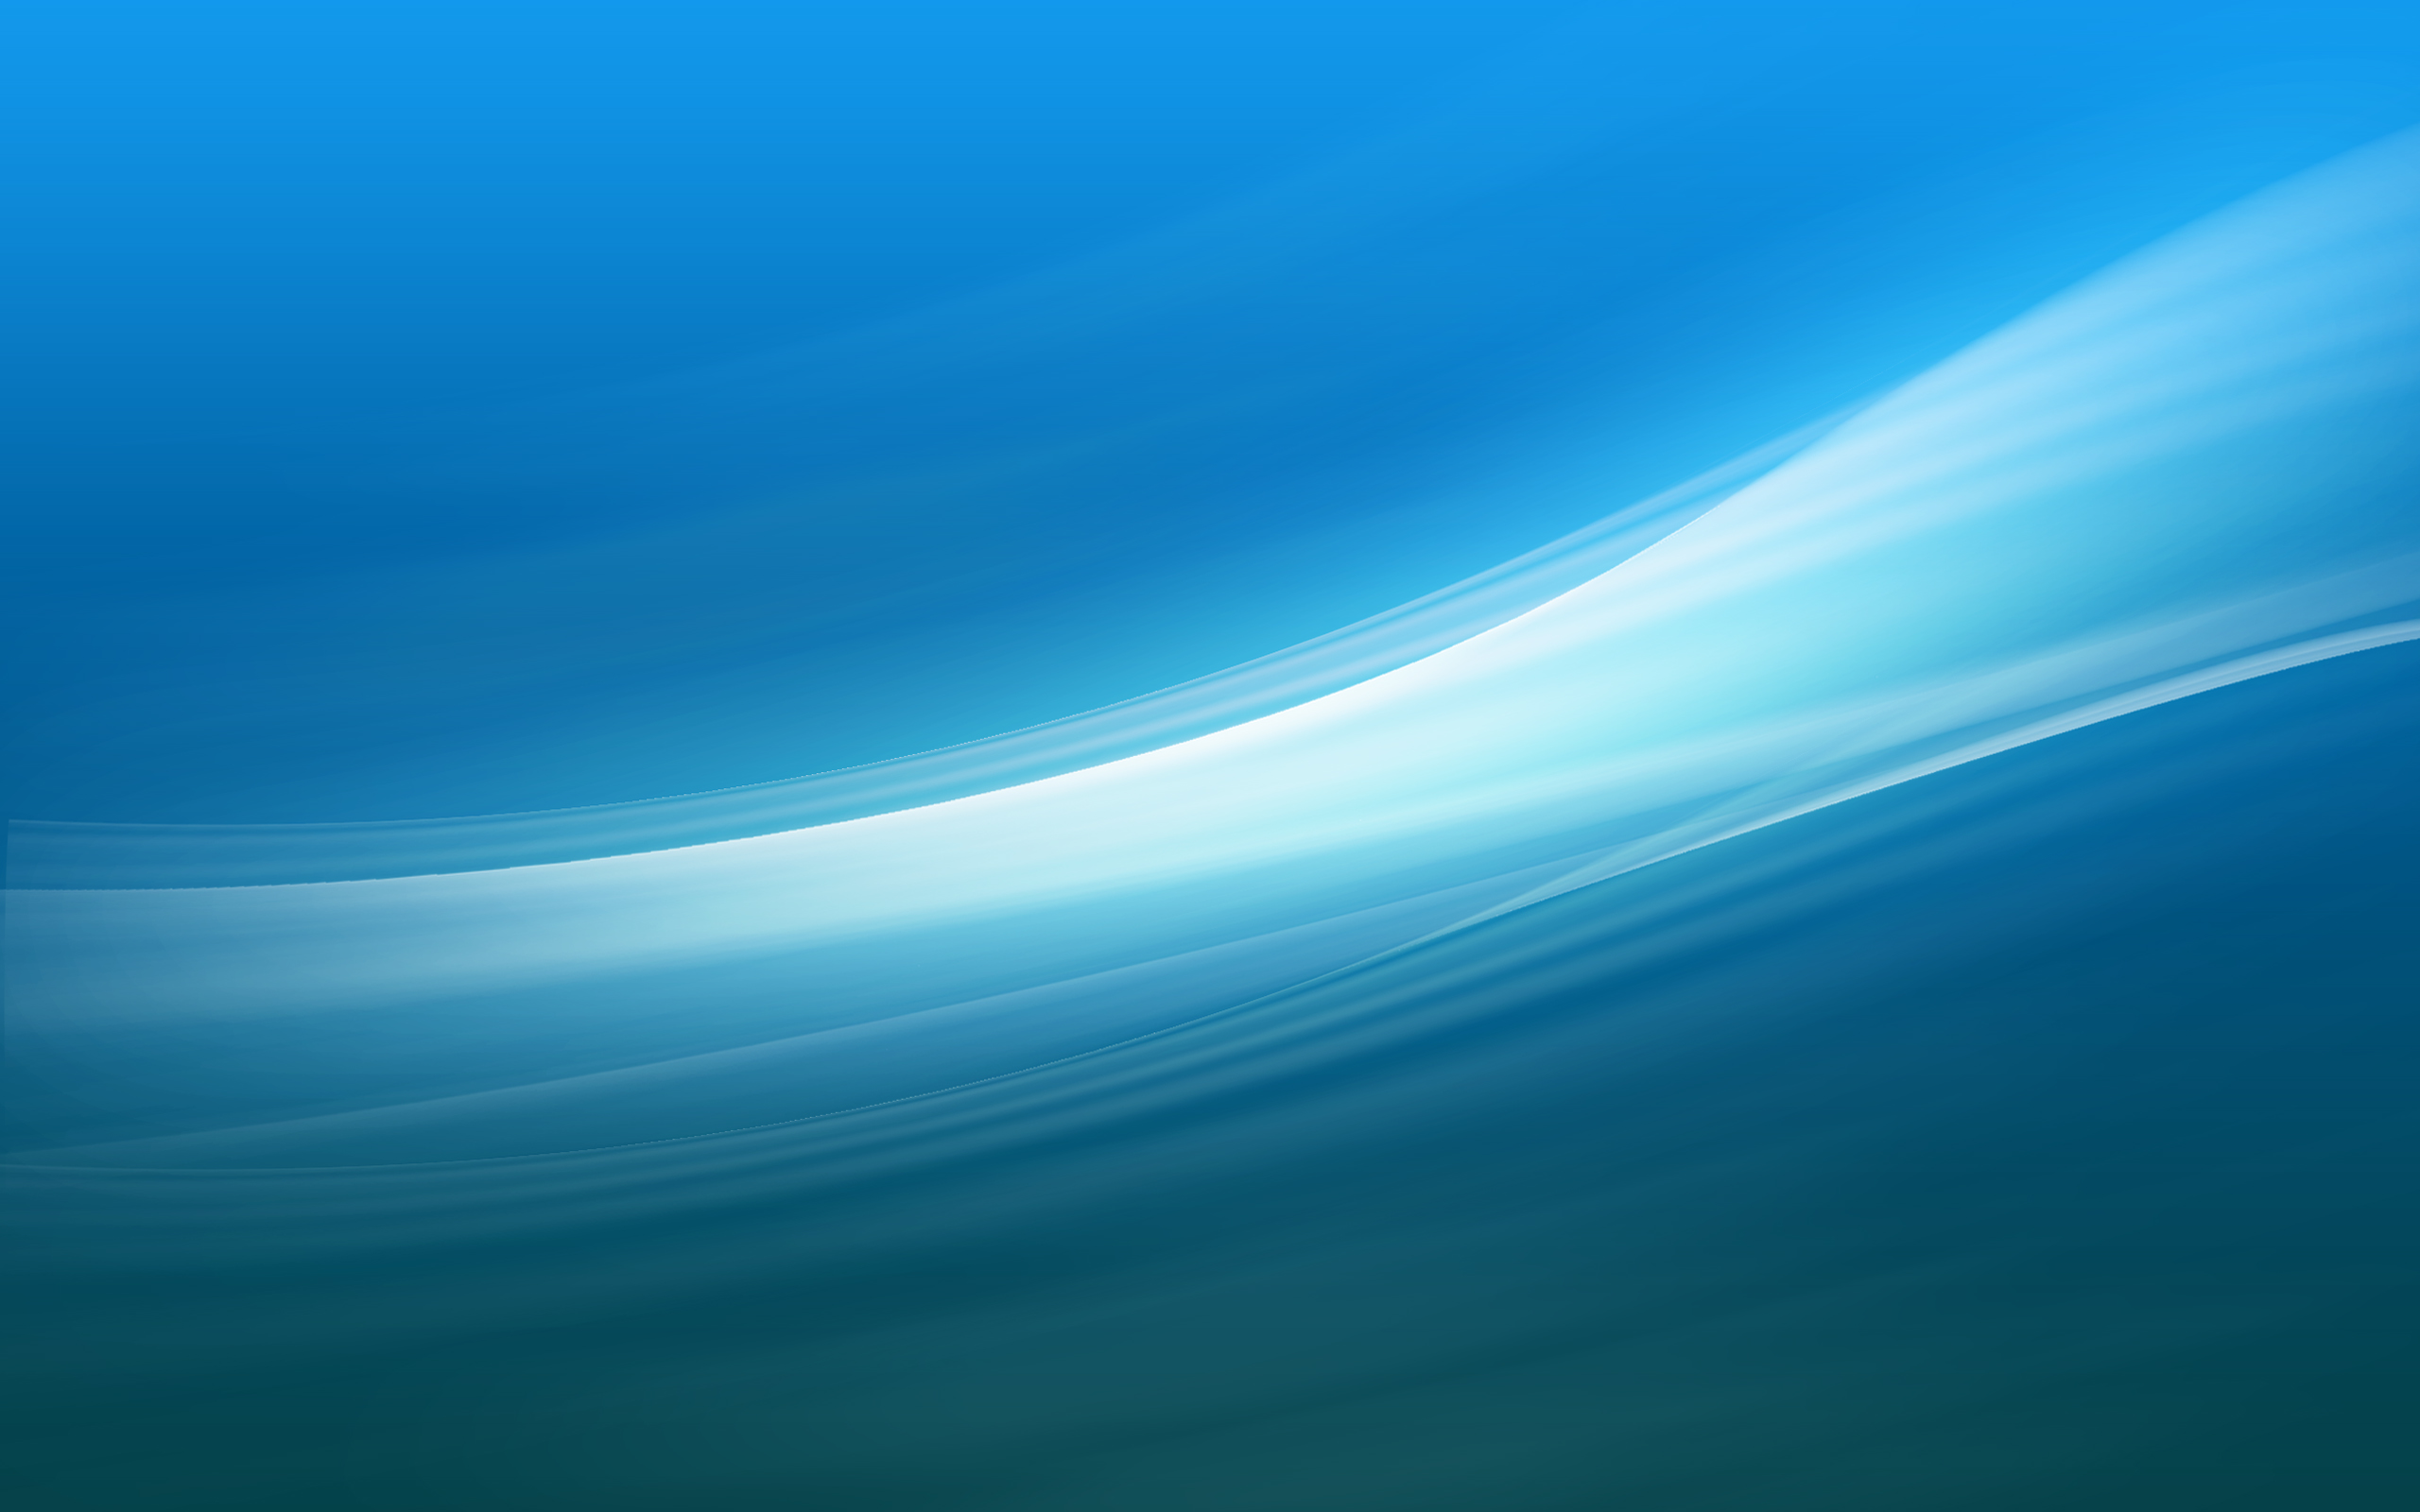 Blue Light Wallpapers HD Wallpapers 2560x1600